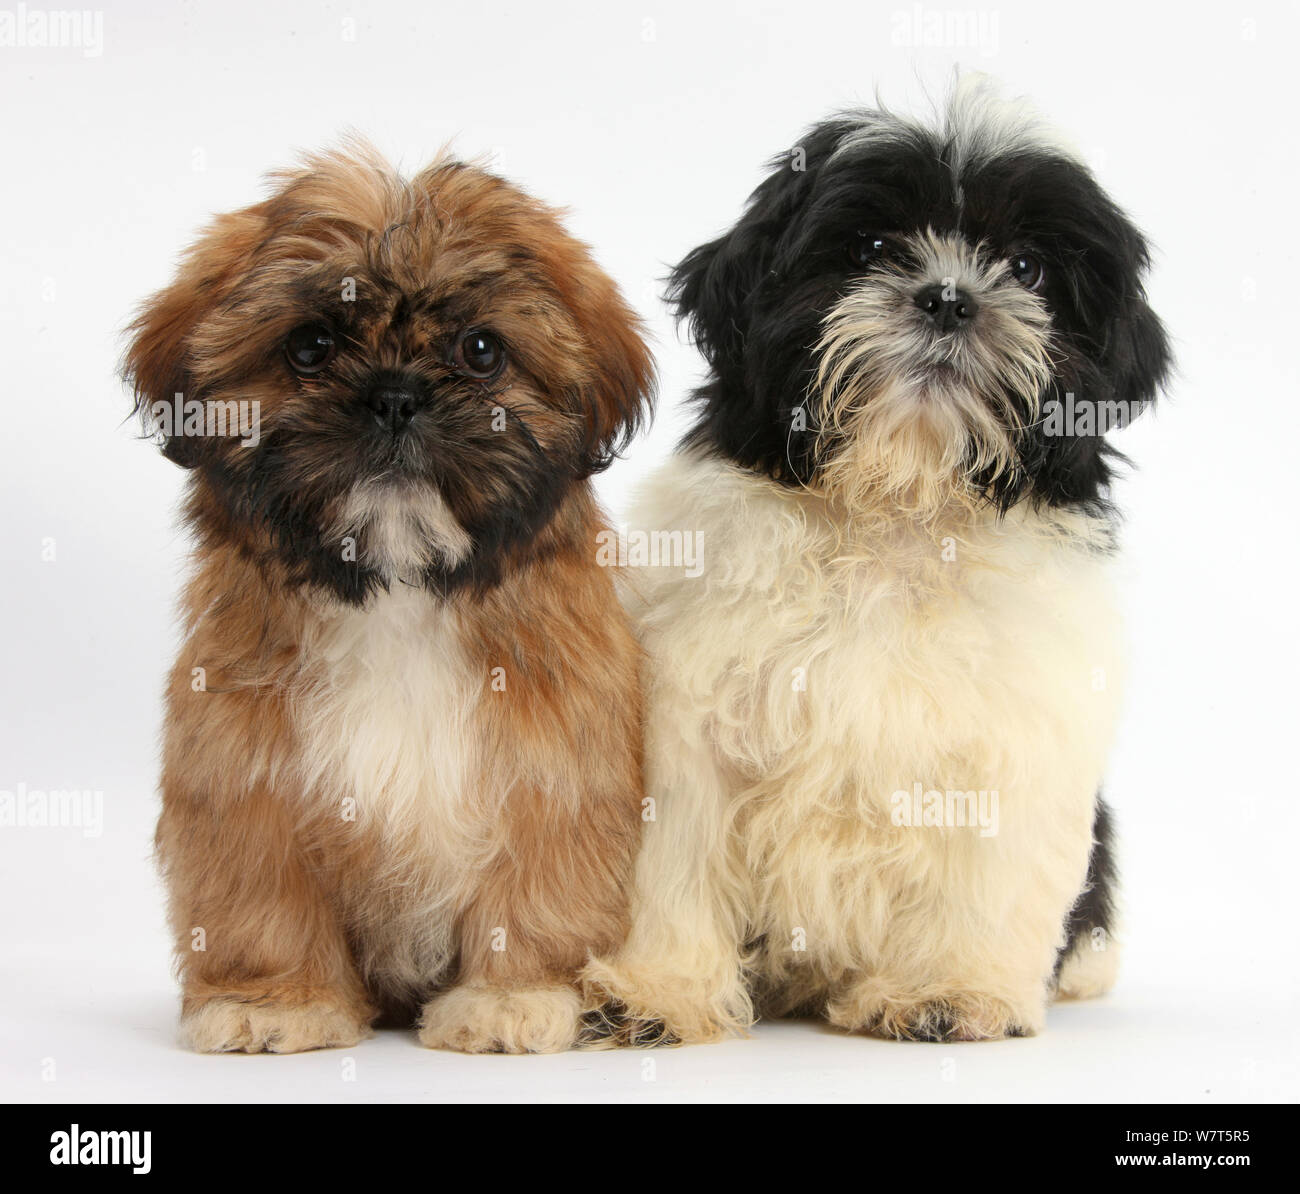 Brown And Black And White Shih Tzu Puppies Stock Photo Alamy